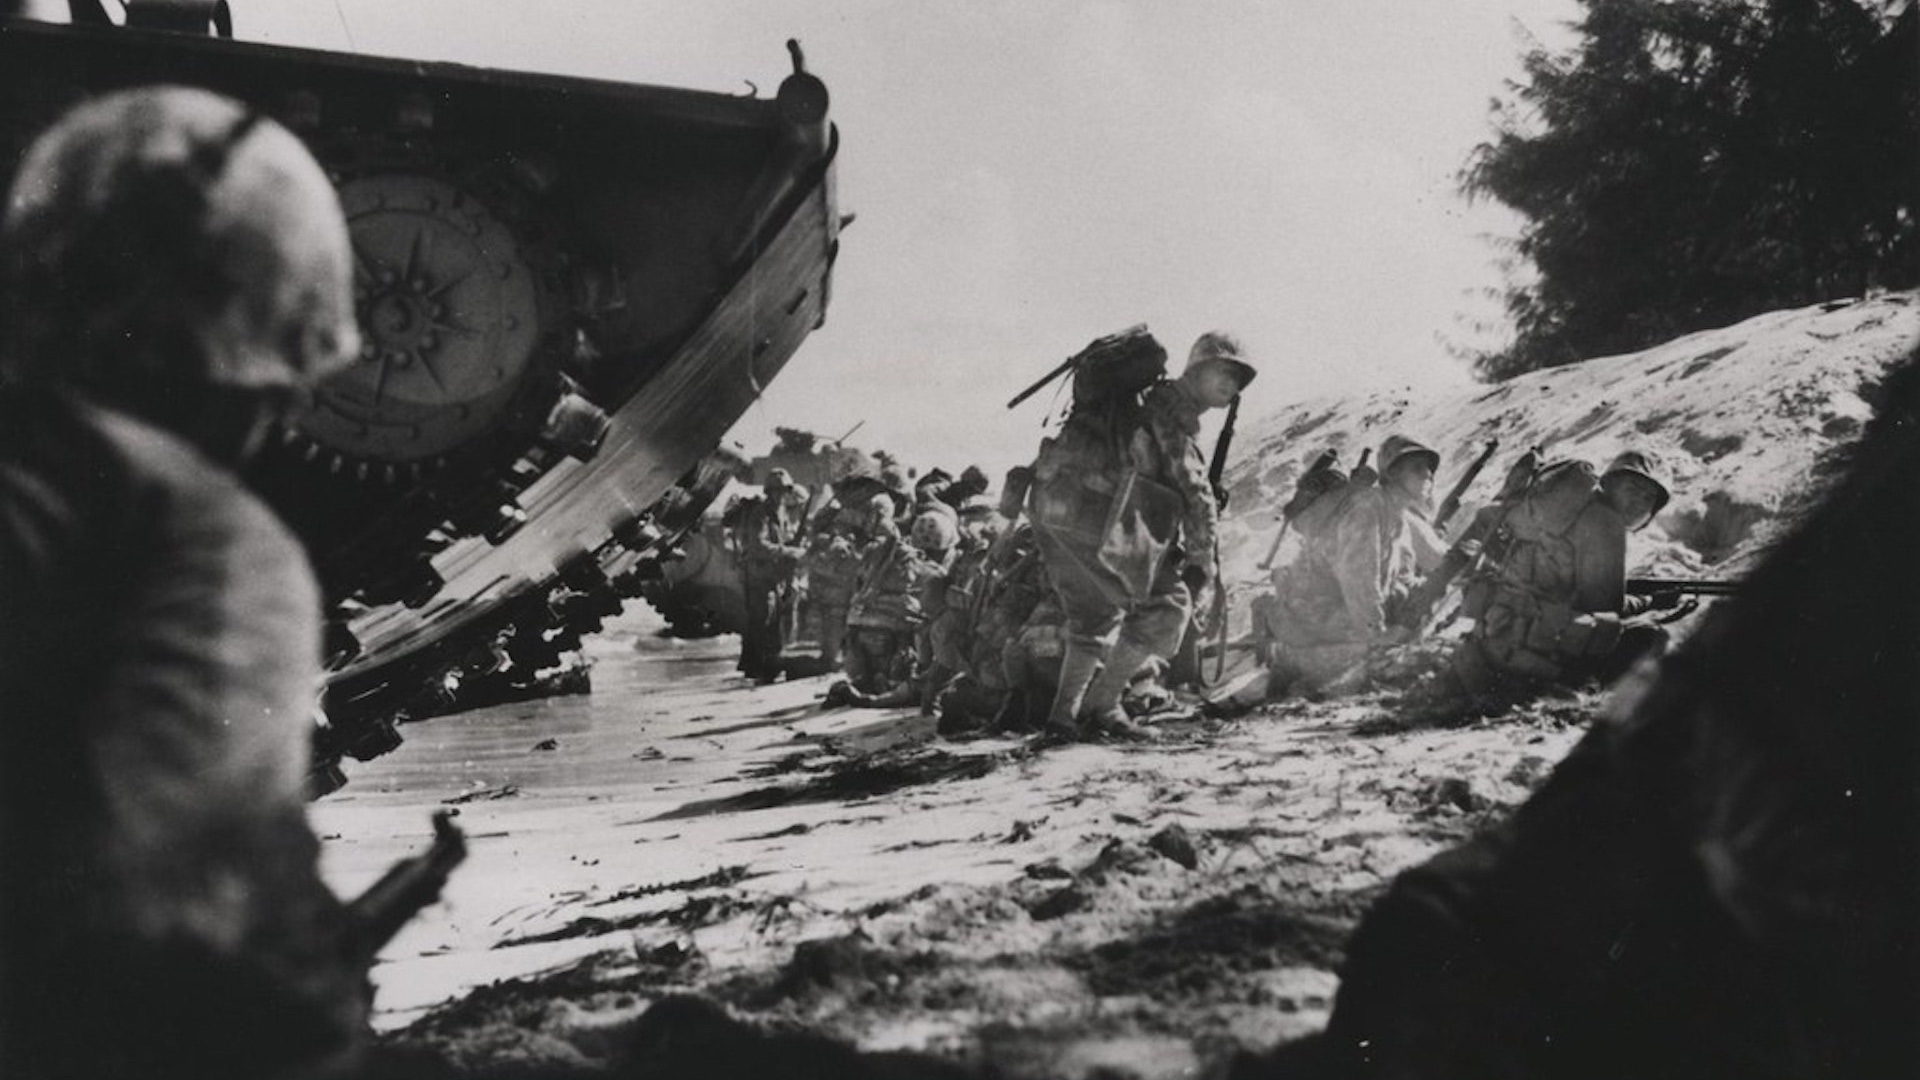 Asian Pacific Island research is largely limited to World War II era intervention.